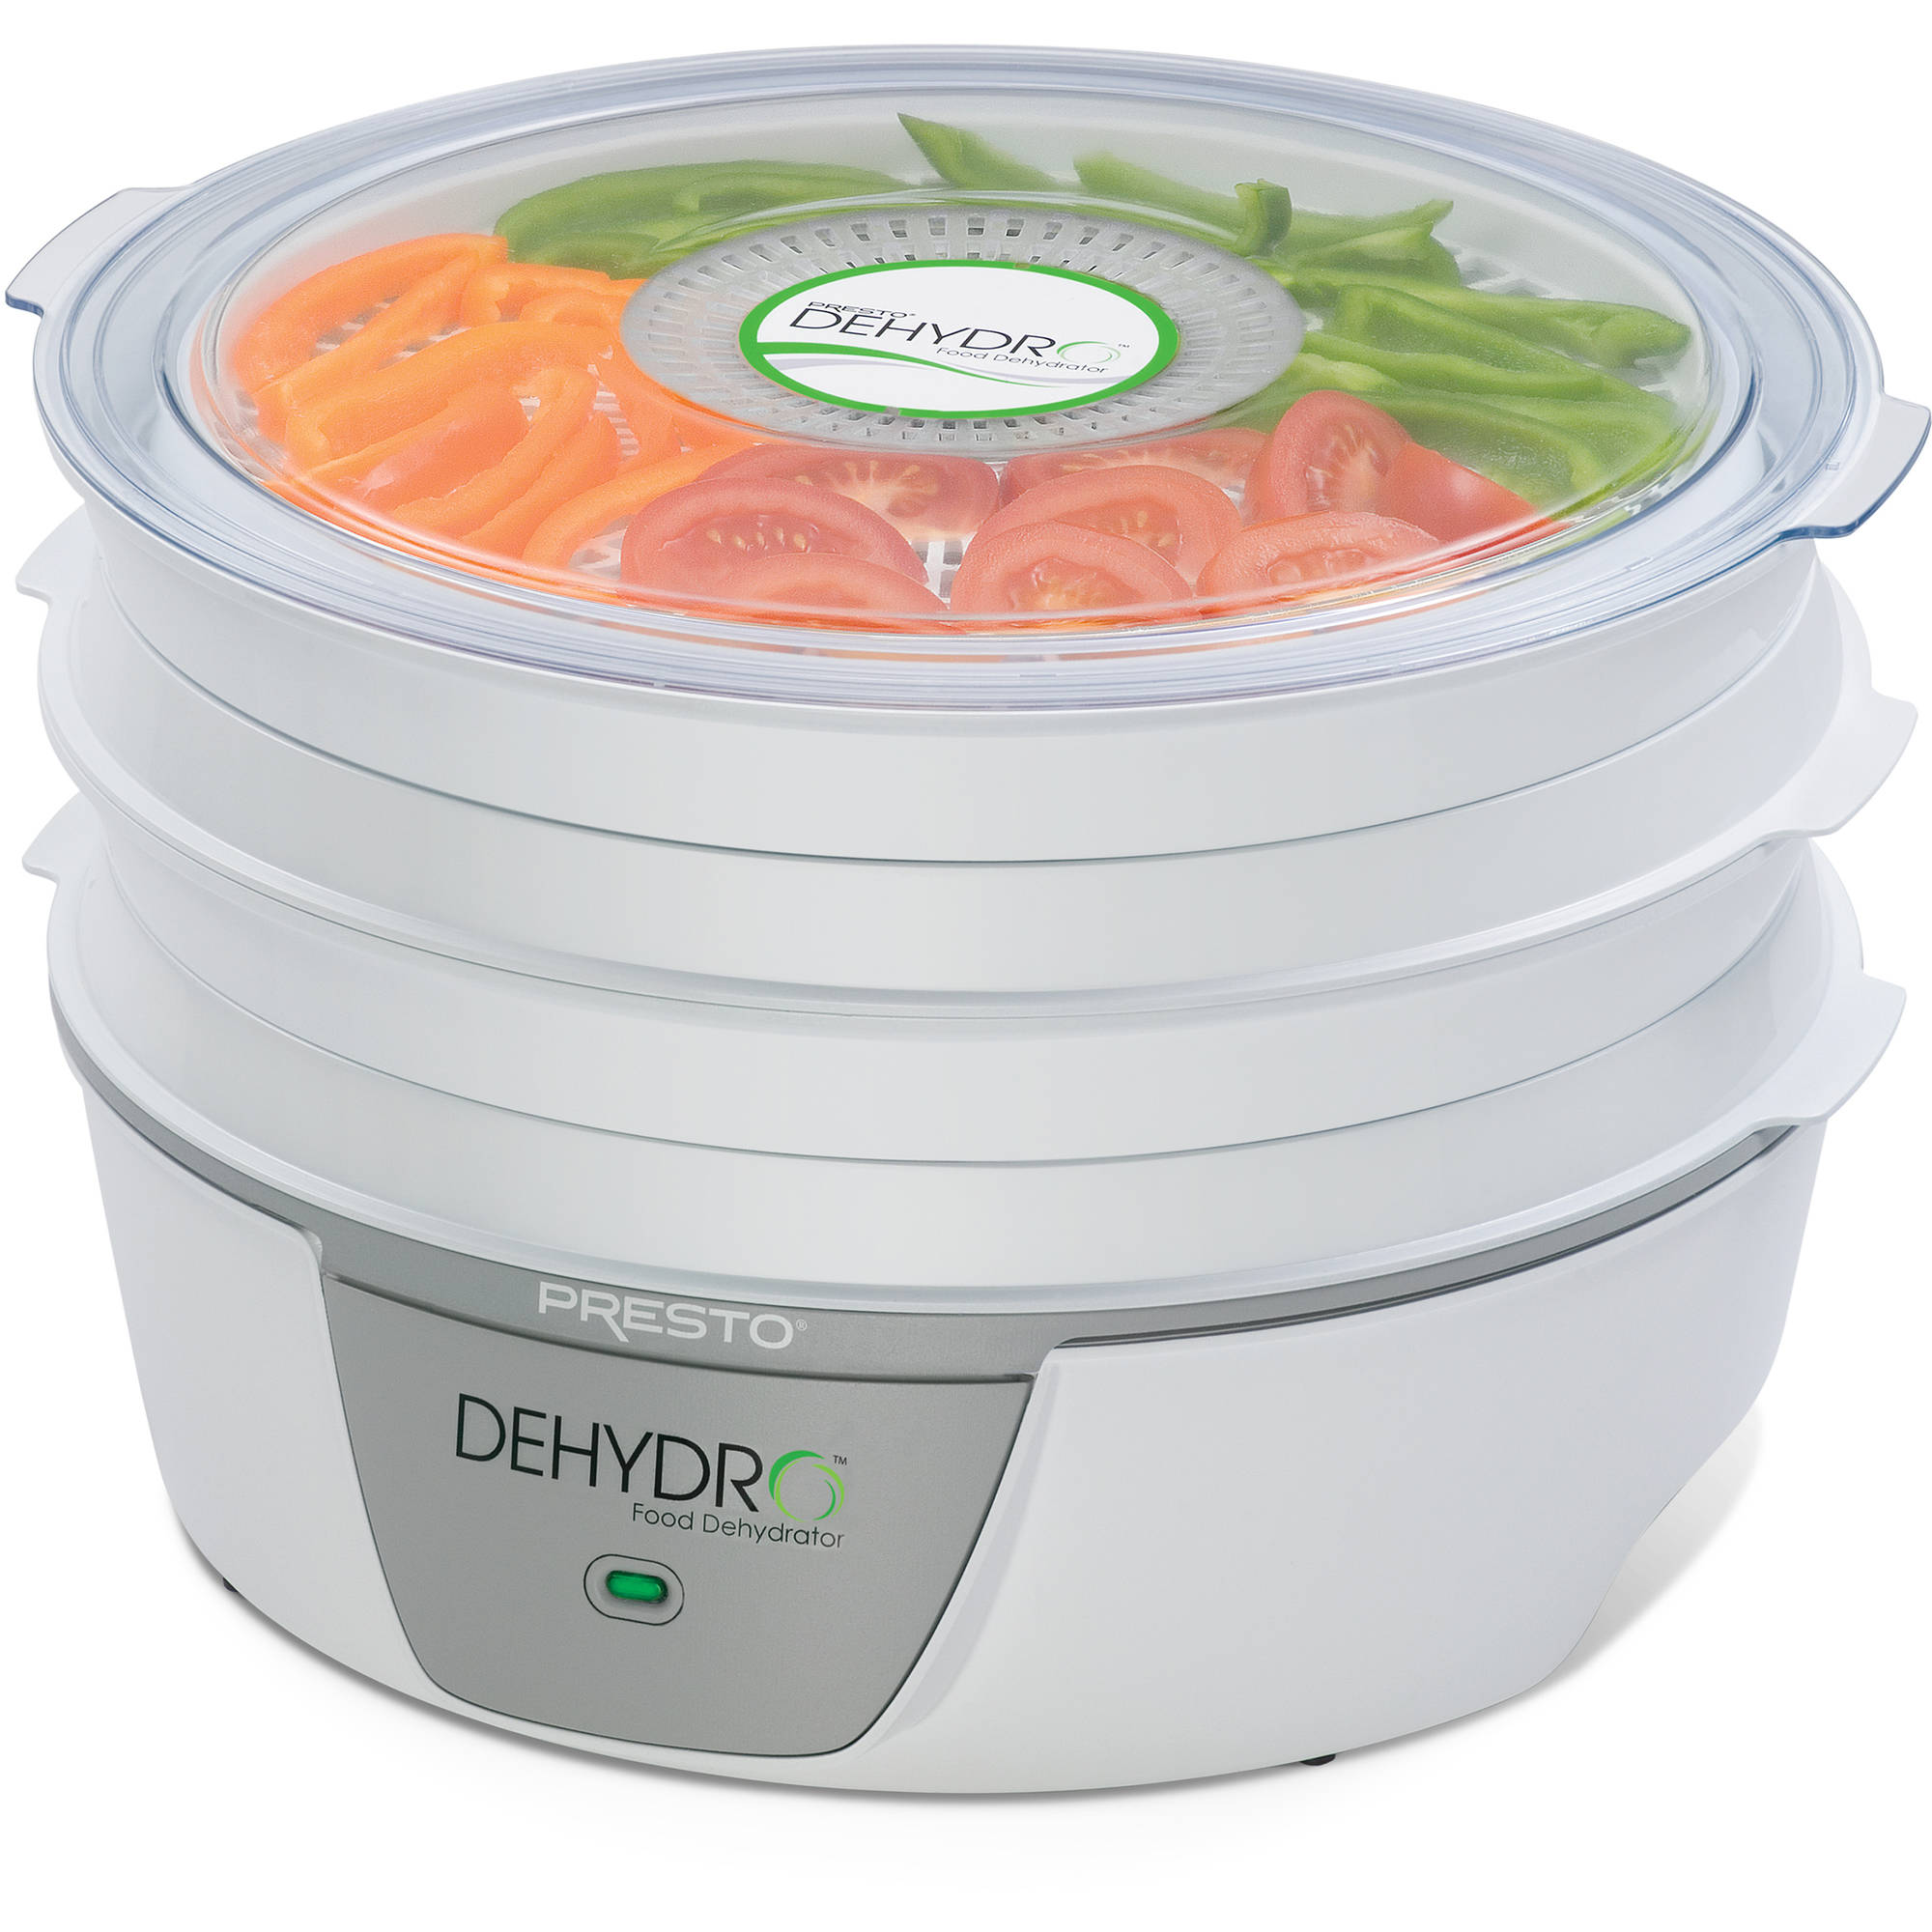 Presto Dehydro Electric Food Dehydrator 06300 by National Presto Industries